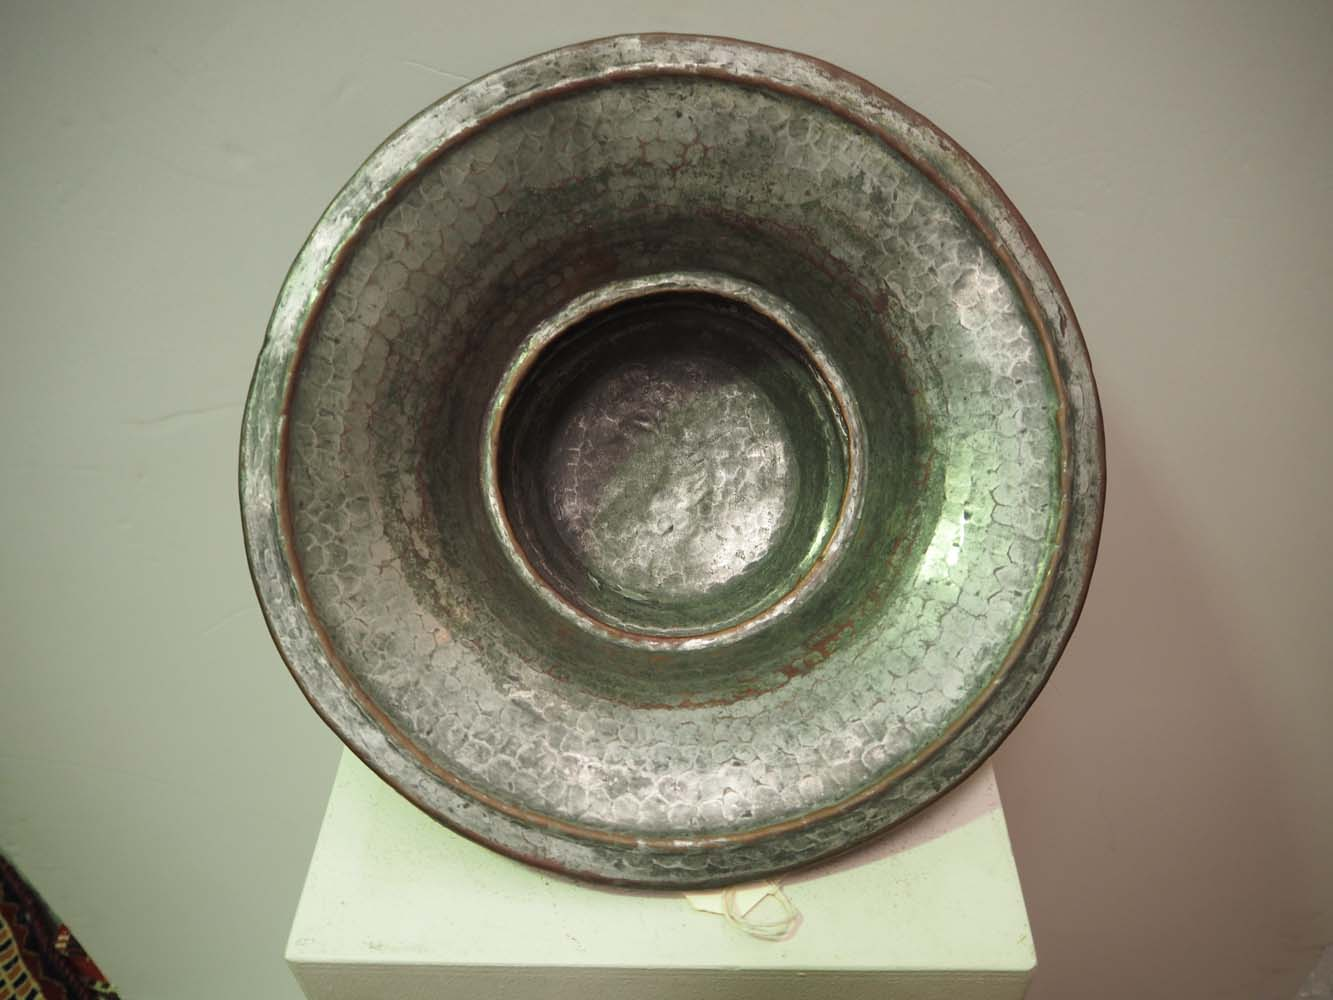 Ottoman period tinned copper bowl